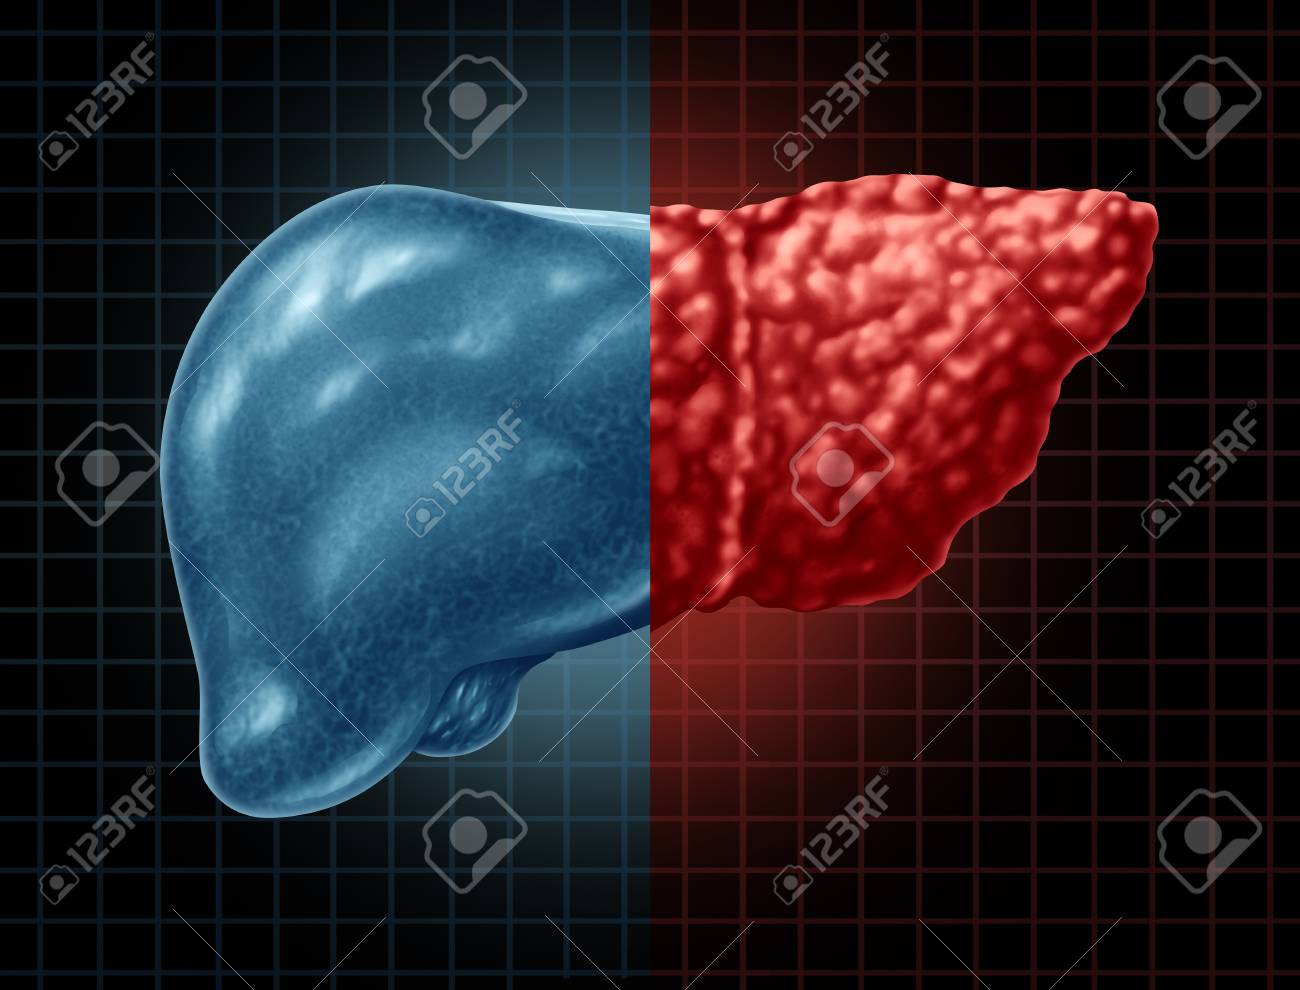 Fatty Liver Disease And Hepatic Steatosis Body Part As A Medical